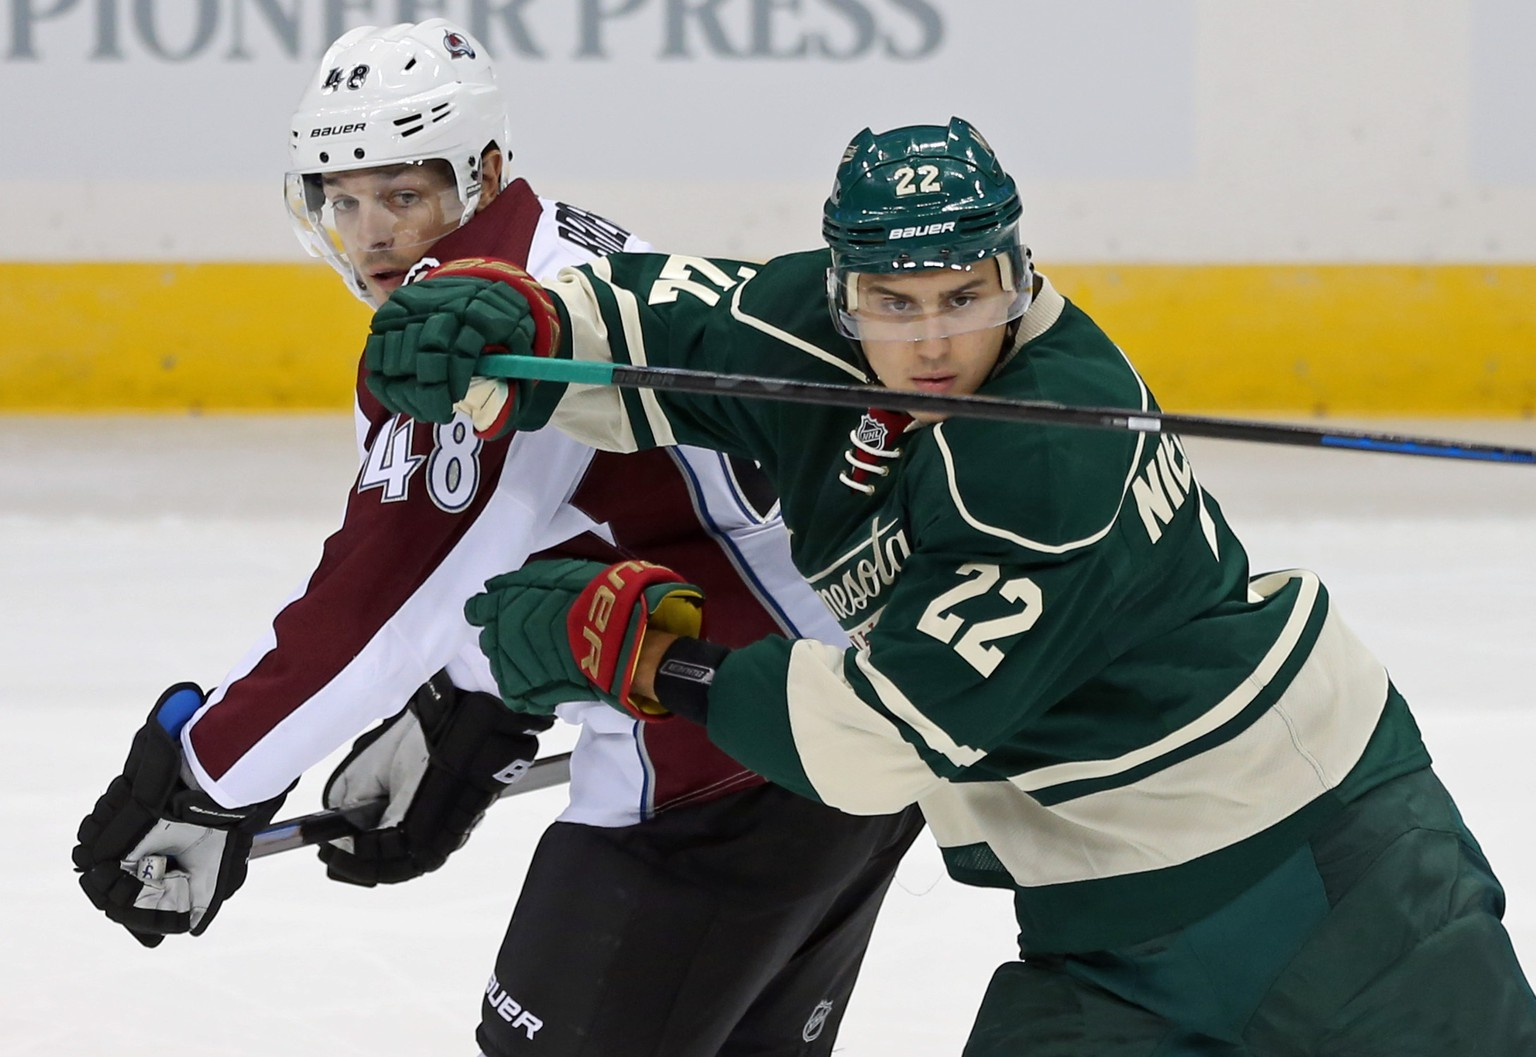 Minnesota Wild's Nino Niederreiter, right, of Switzerland, eyes the puck as he tries to keep Colorado Avalanche' s Daniel Briere at bay in the first period of an NHL hockey game, Thursday, Oct. 9, 2014, in St. Paul, Minn. (AP Photo/Jim Mone)